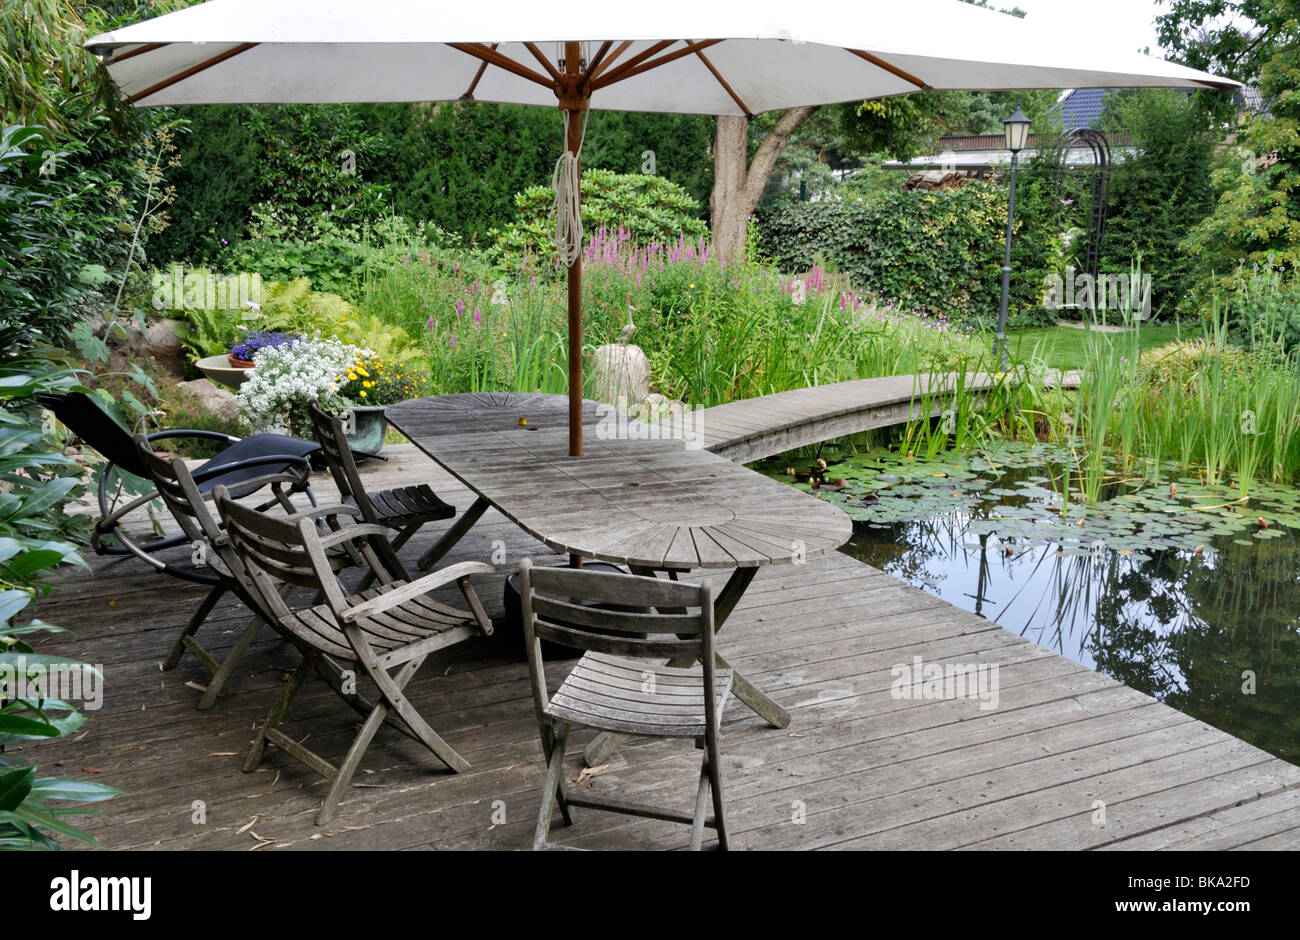 wooden decking area with seats at a swimming pond stock photo